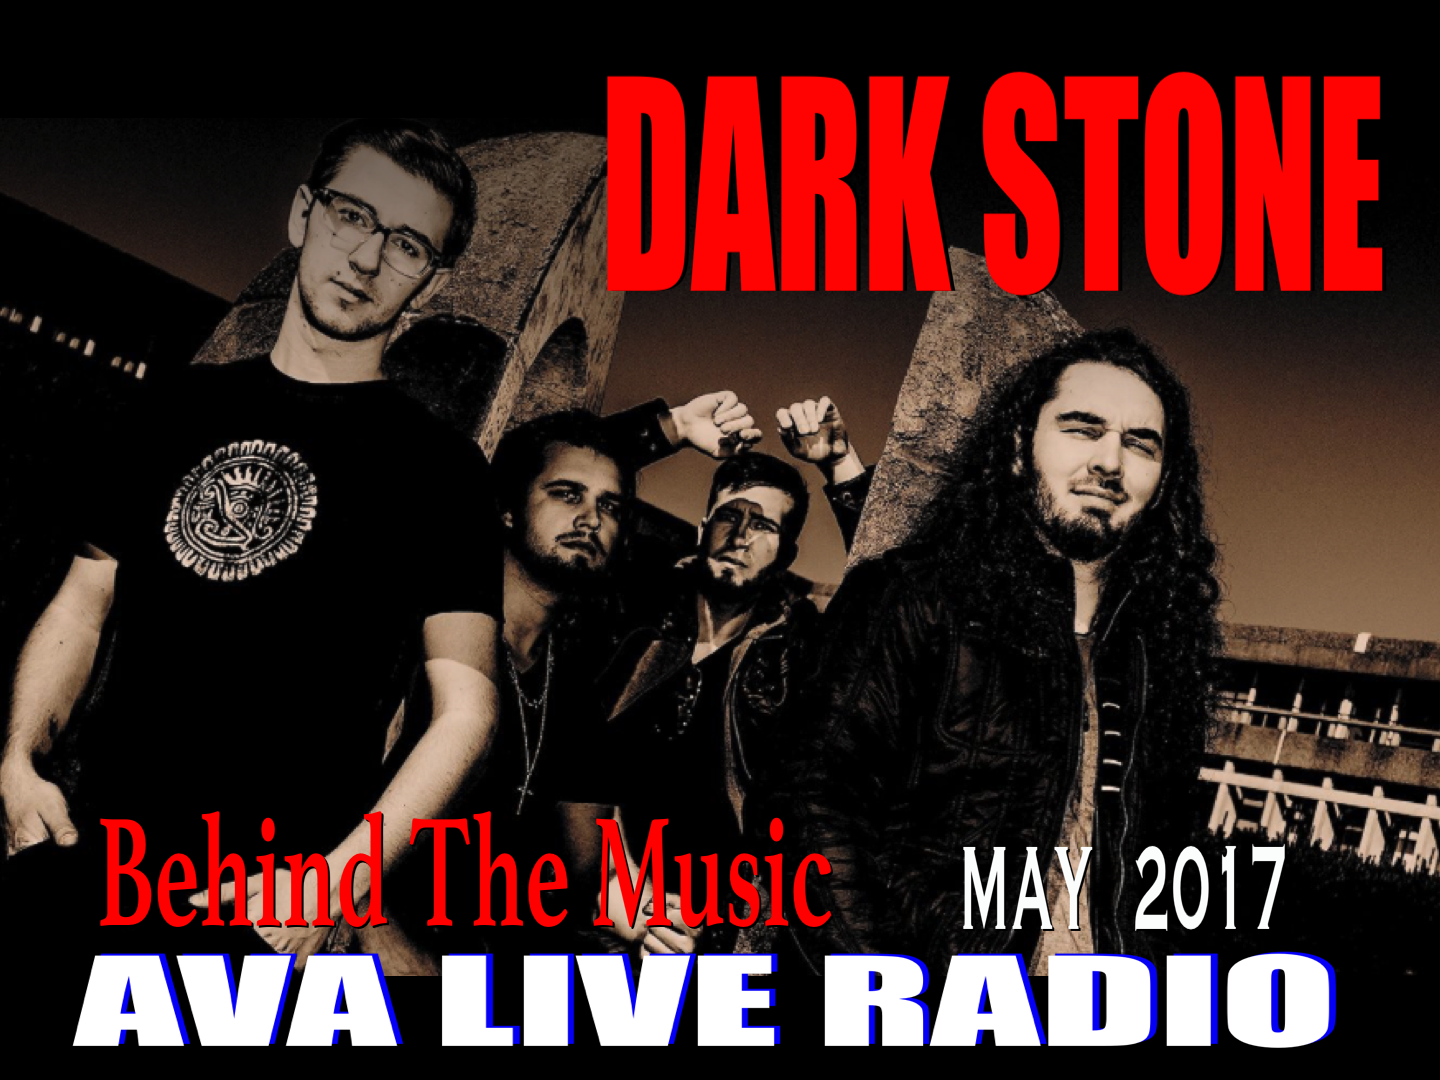 Darkstone avaliveradio.png